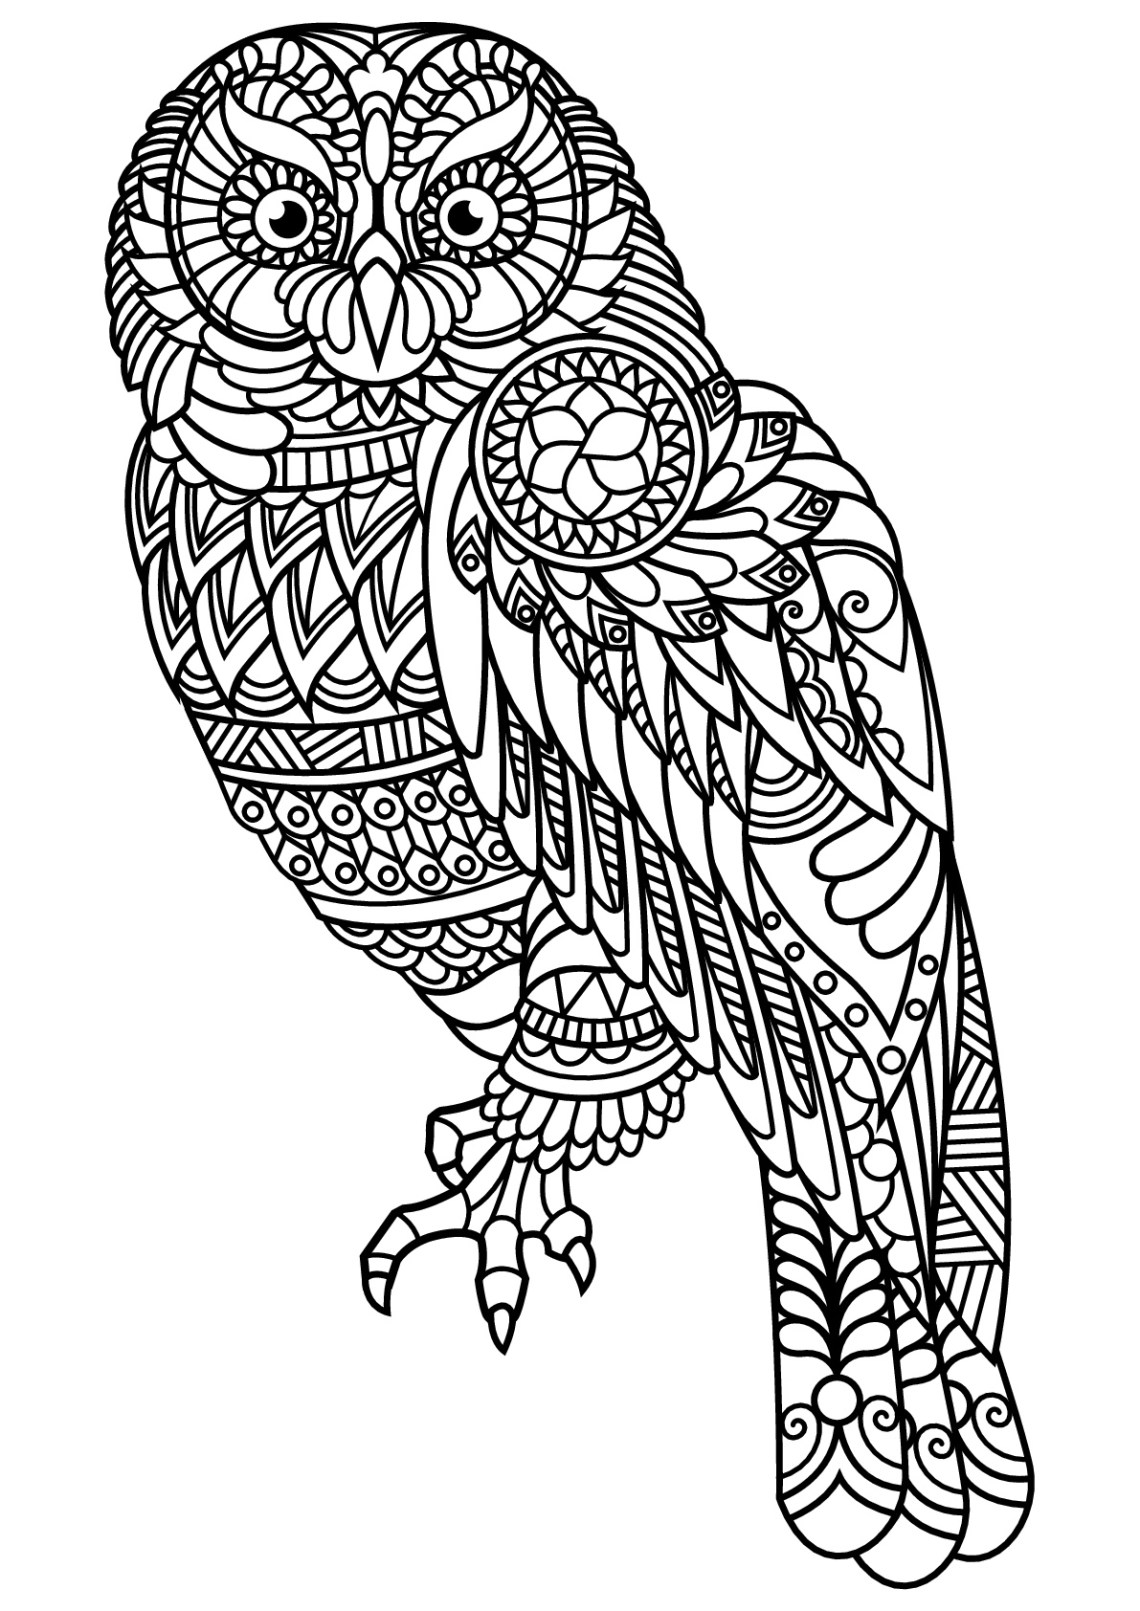 Free book owl - Owls Adult Coloring Pages | free printable colouring pages for adults animals